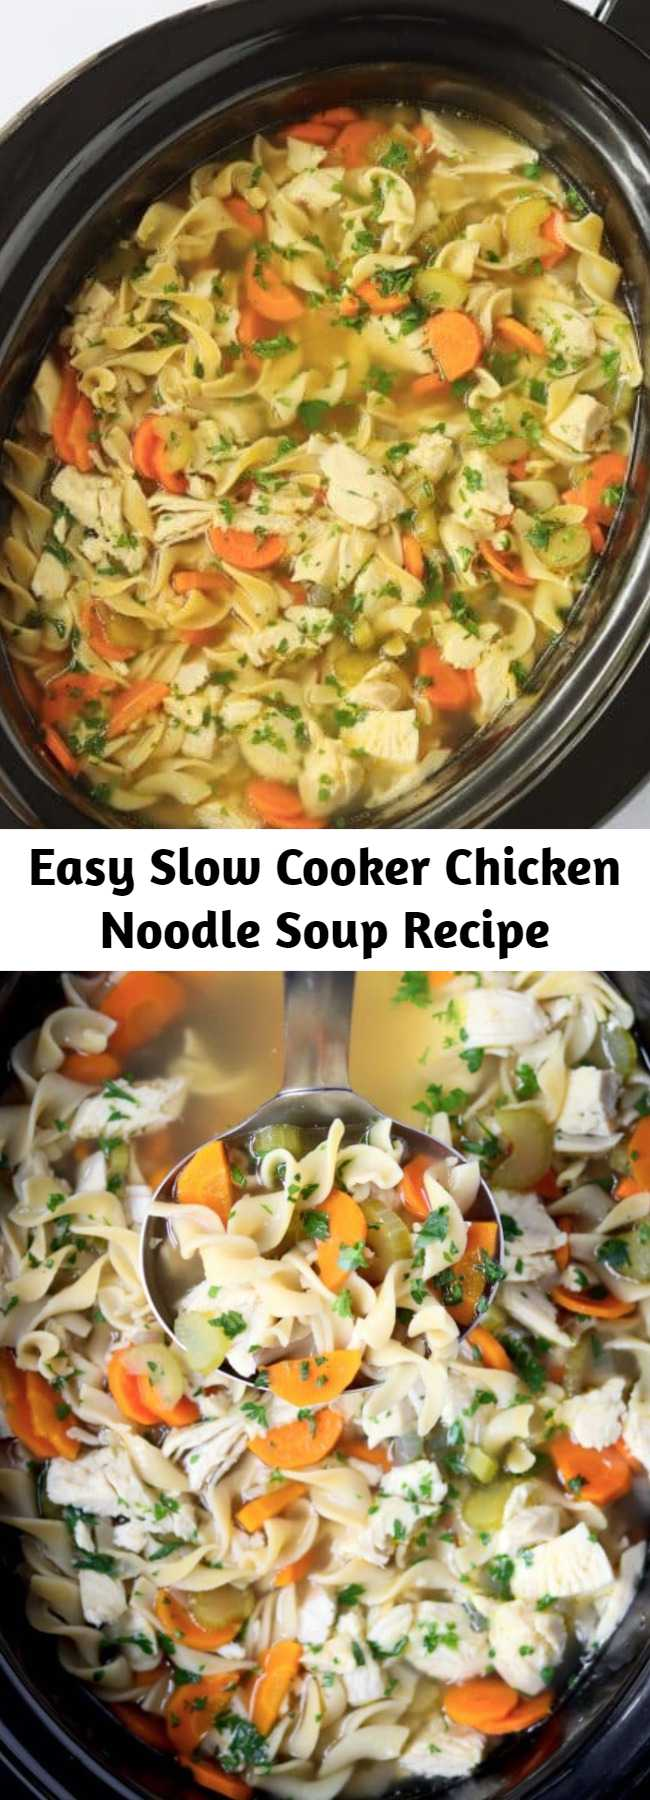 Easy Slow Cooker Chicken Noodle Soup Recipe - Slow Cooker Chicken Noodle Soup is the ultimate comfort recipe. Hearty, comforting, and perfect for cold weather. Let your crockpot do the work. Just add all the ingredients and let it cook all day. Simple and easy way to make comforting, healthy, homemade Chicken Noodle Soup. #slowcookersoup #chickennoodle #chickennoodlesoup #crockpotsoup